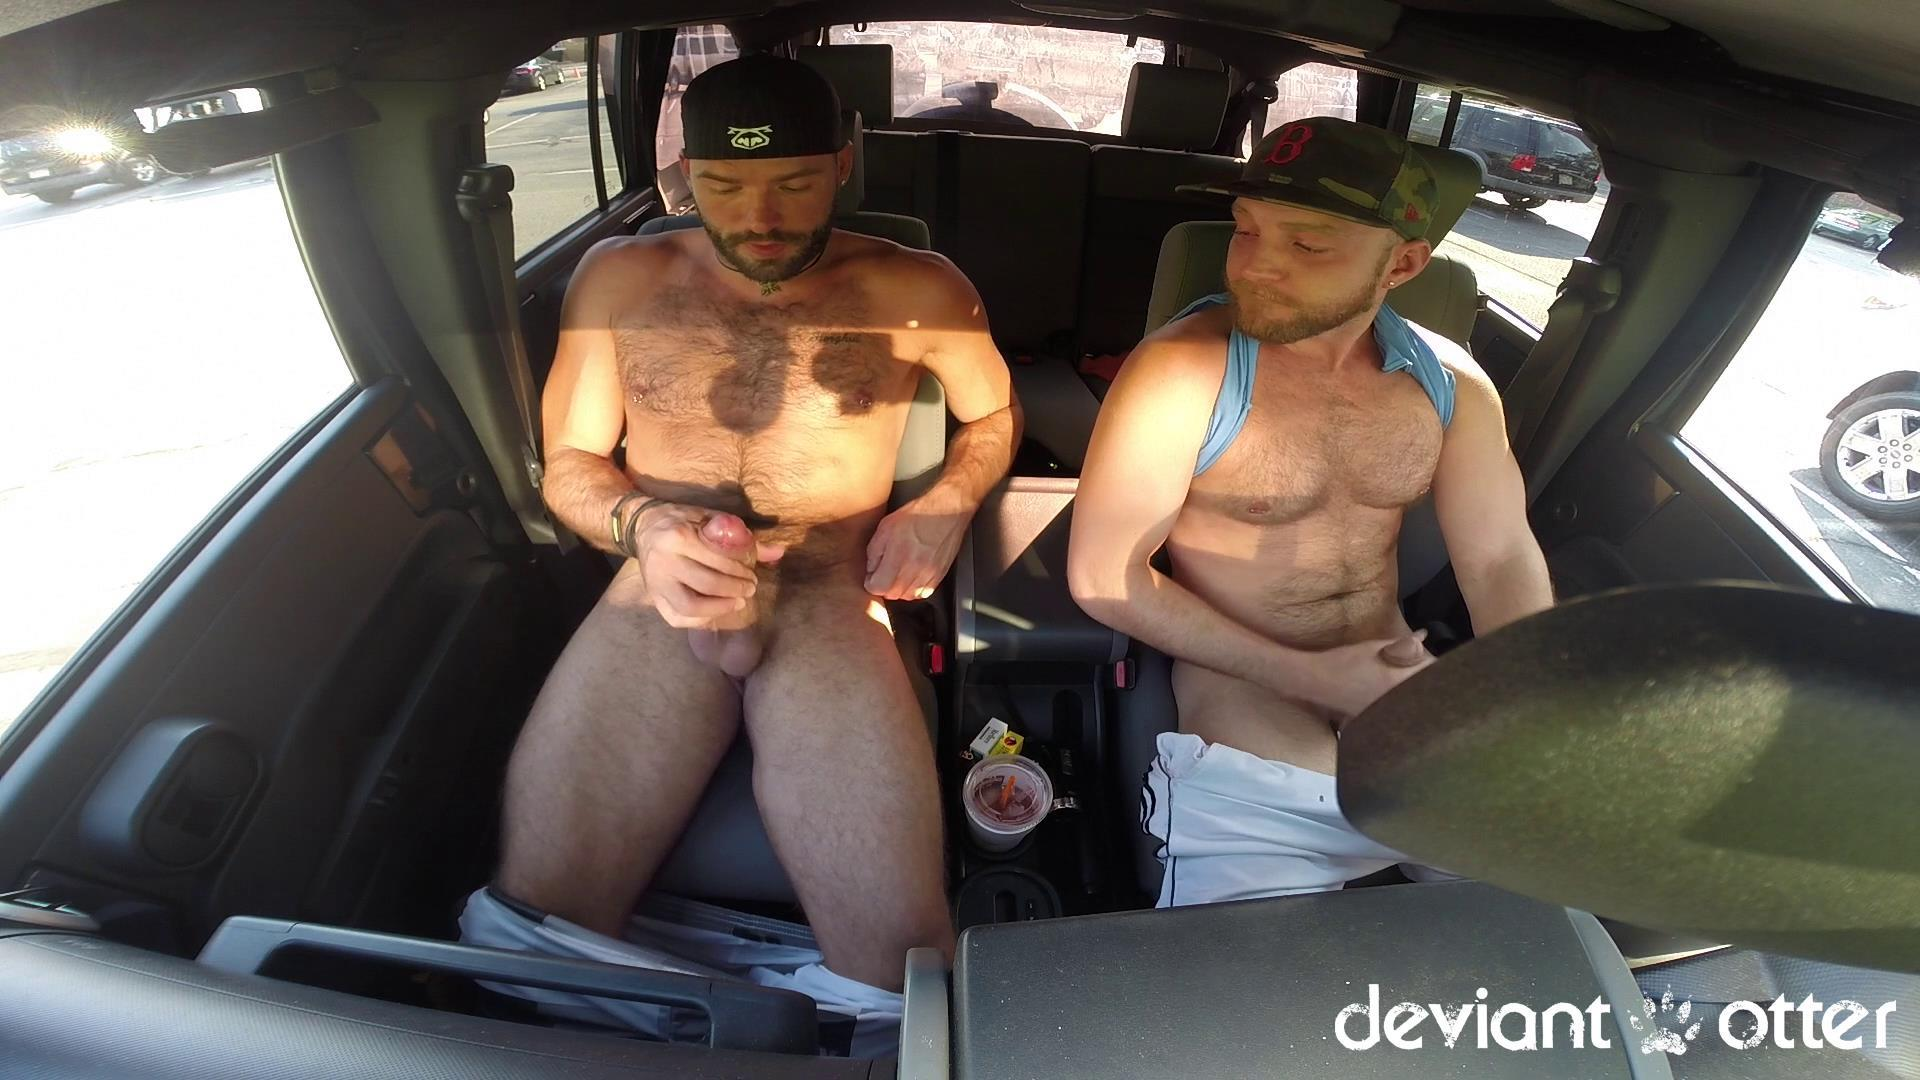 Deviant-Otter-Xavier-Sucking-Cock-In-Public-Hairy-Guys-Amateur-Gay-Porn-11 Masculine Hairy Guys Sucking Each Other's Cock In A Parking Lot